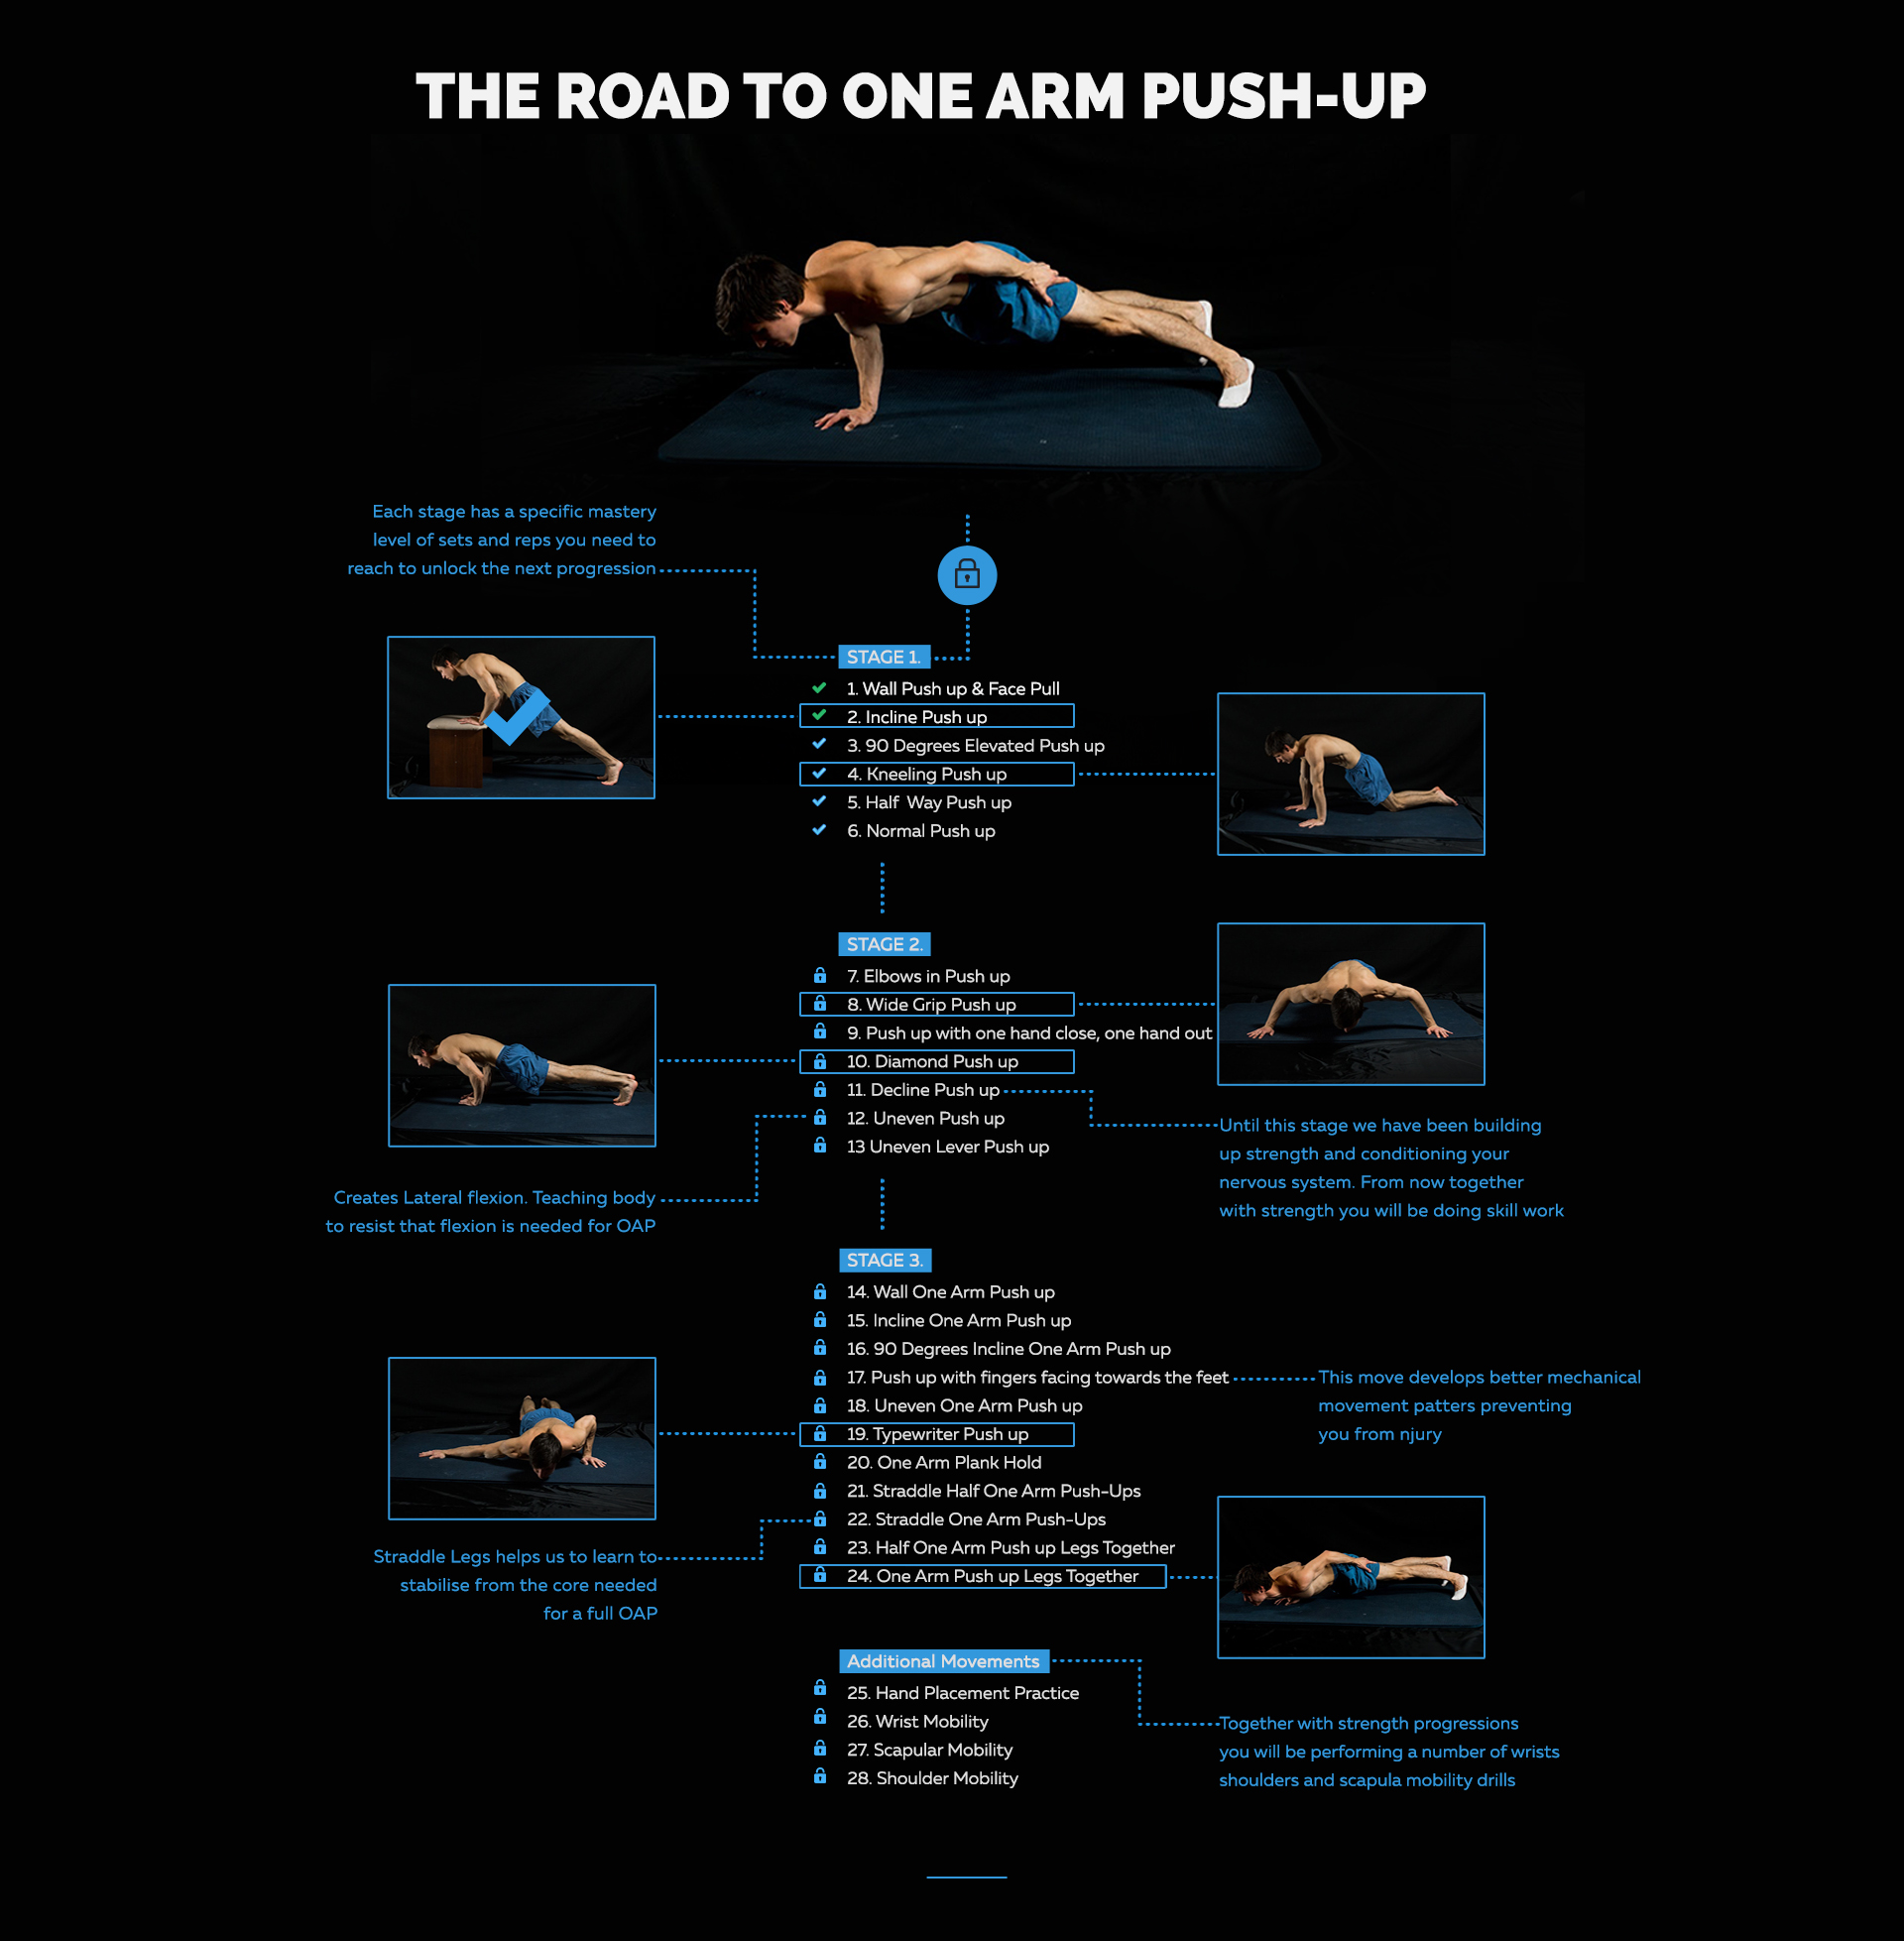 The complete guide to calisthenics advise